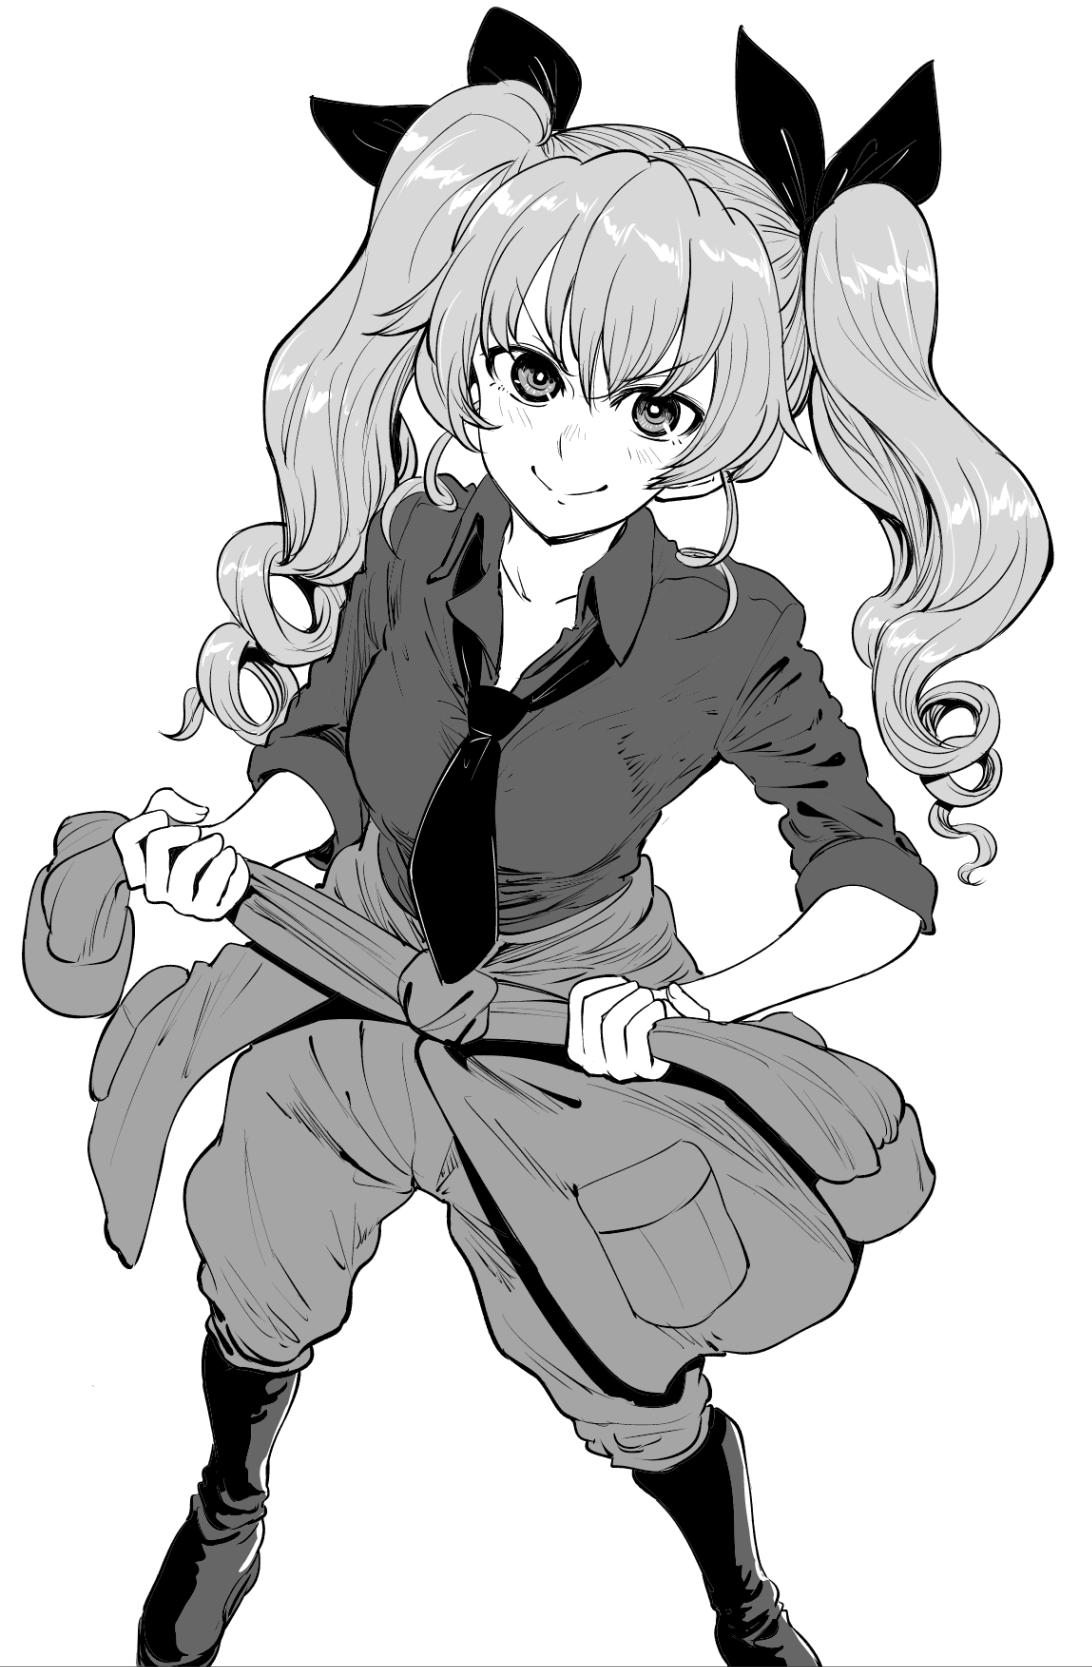 1girl anchovy_(girls_und_panzer) anzio_military_uniform bangs belt bonkara_(sokuseki_maou) boots closed_mouth clothes_around_waist commentary dress_shirt drill_hair eyebrows_visible_through_hair full_body girls_und_panzer greyscale hair_ribbon highres jacket jacket_around_waist knee_boots long_hair long_sleeves looking_at_viewer loose_necktie military military_uniform monochrome necktie ribbon shirt smile solo standing twin_drills twintails uniform v-shaped_eyebrows wing_collar